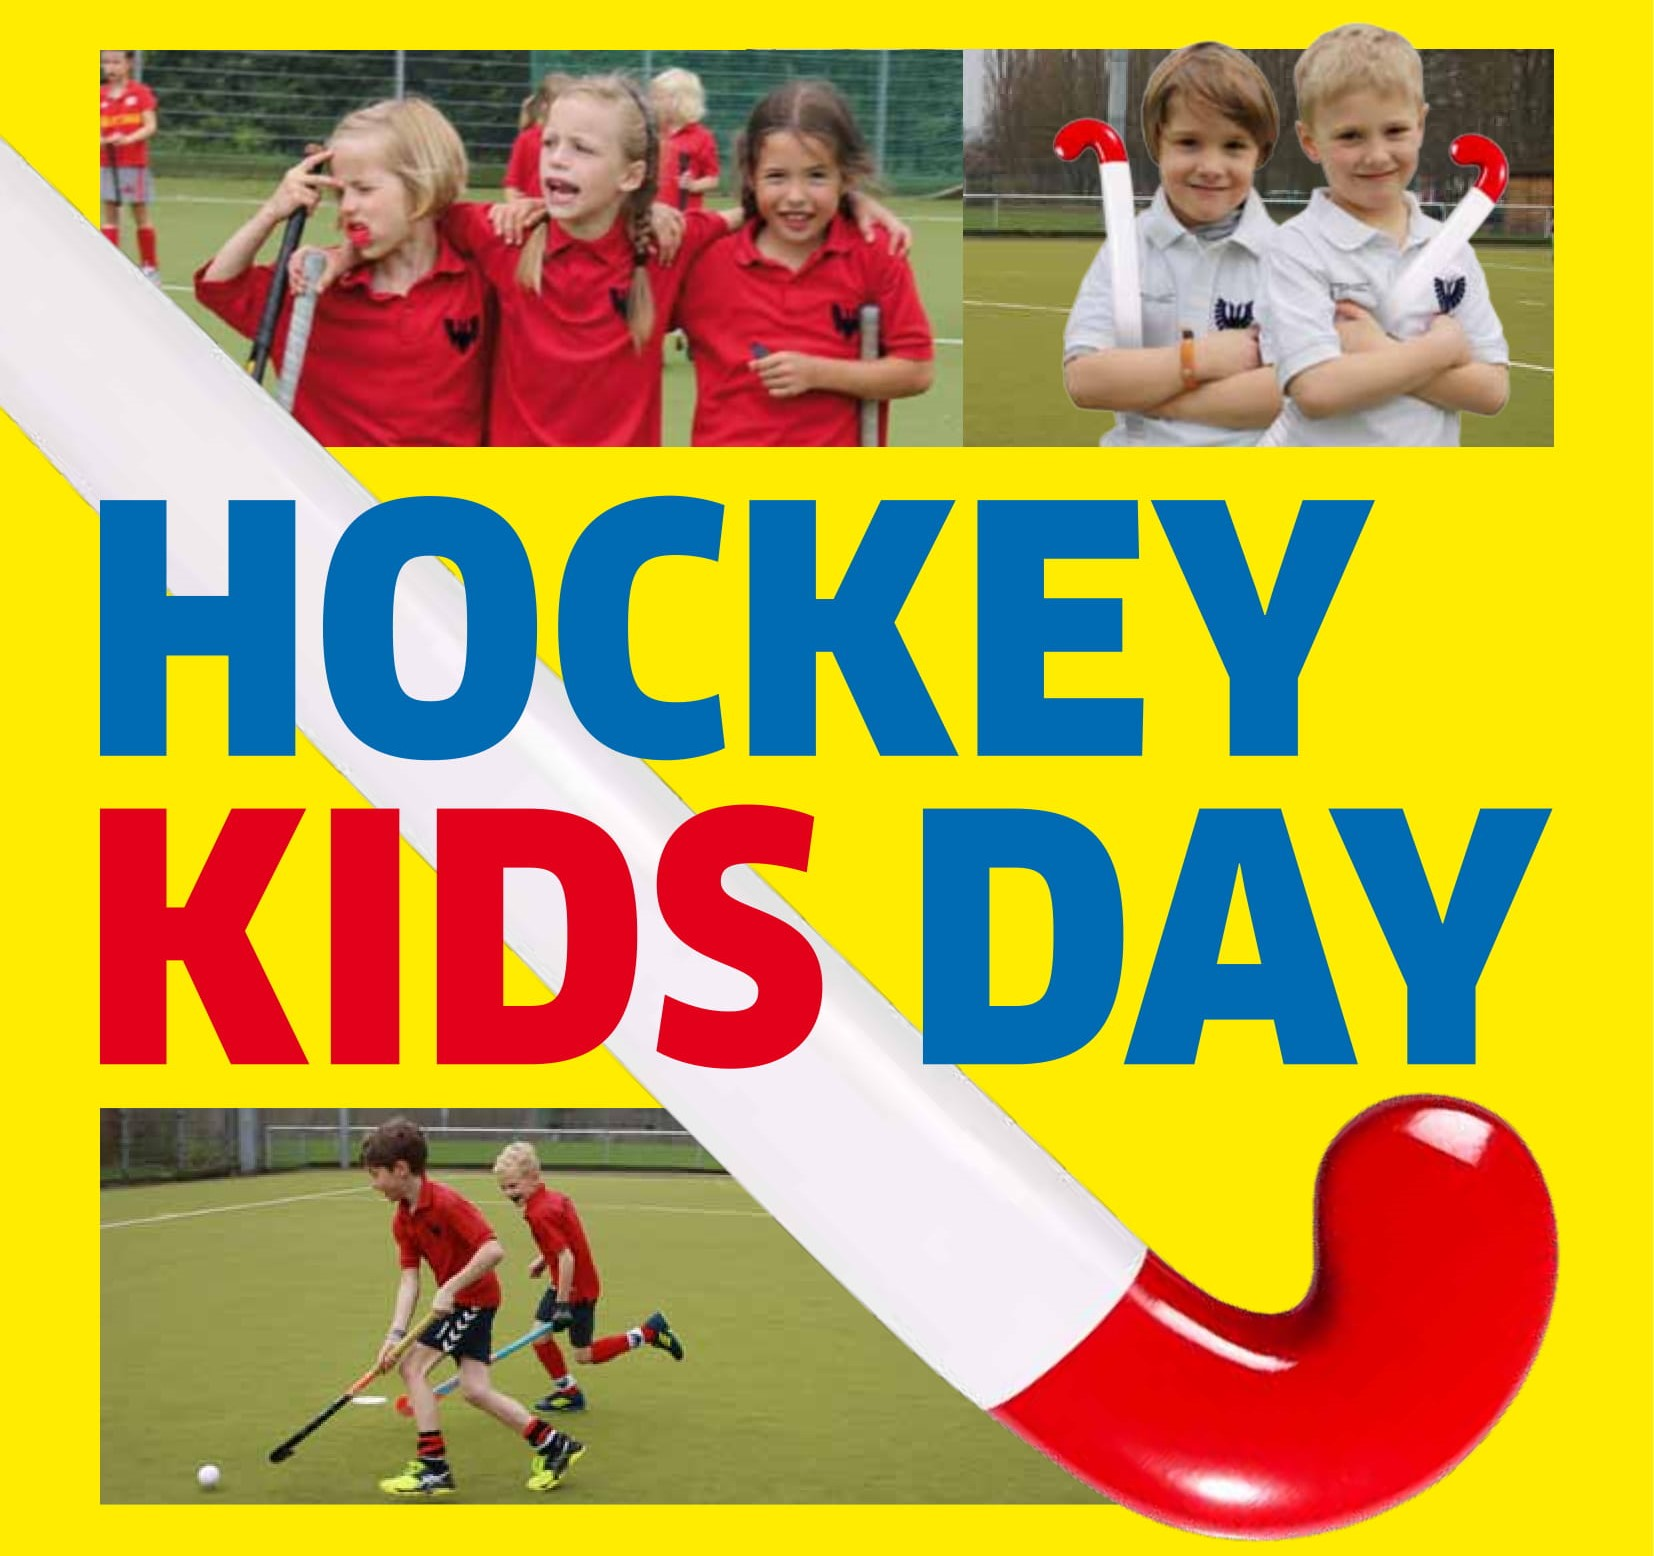 Hockey Kids Day am 23.06.2018